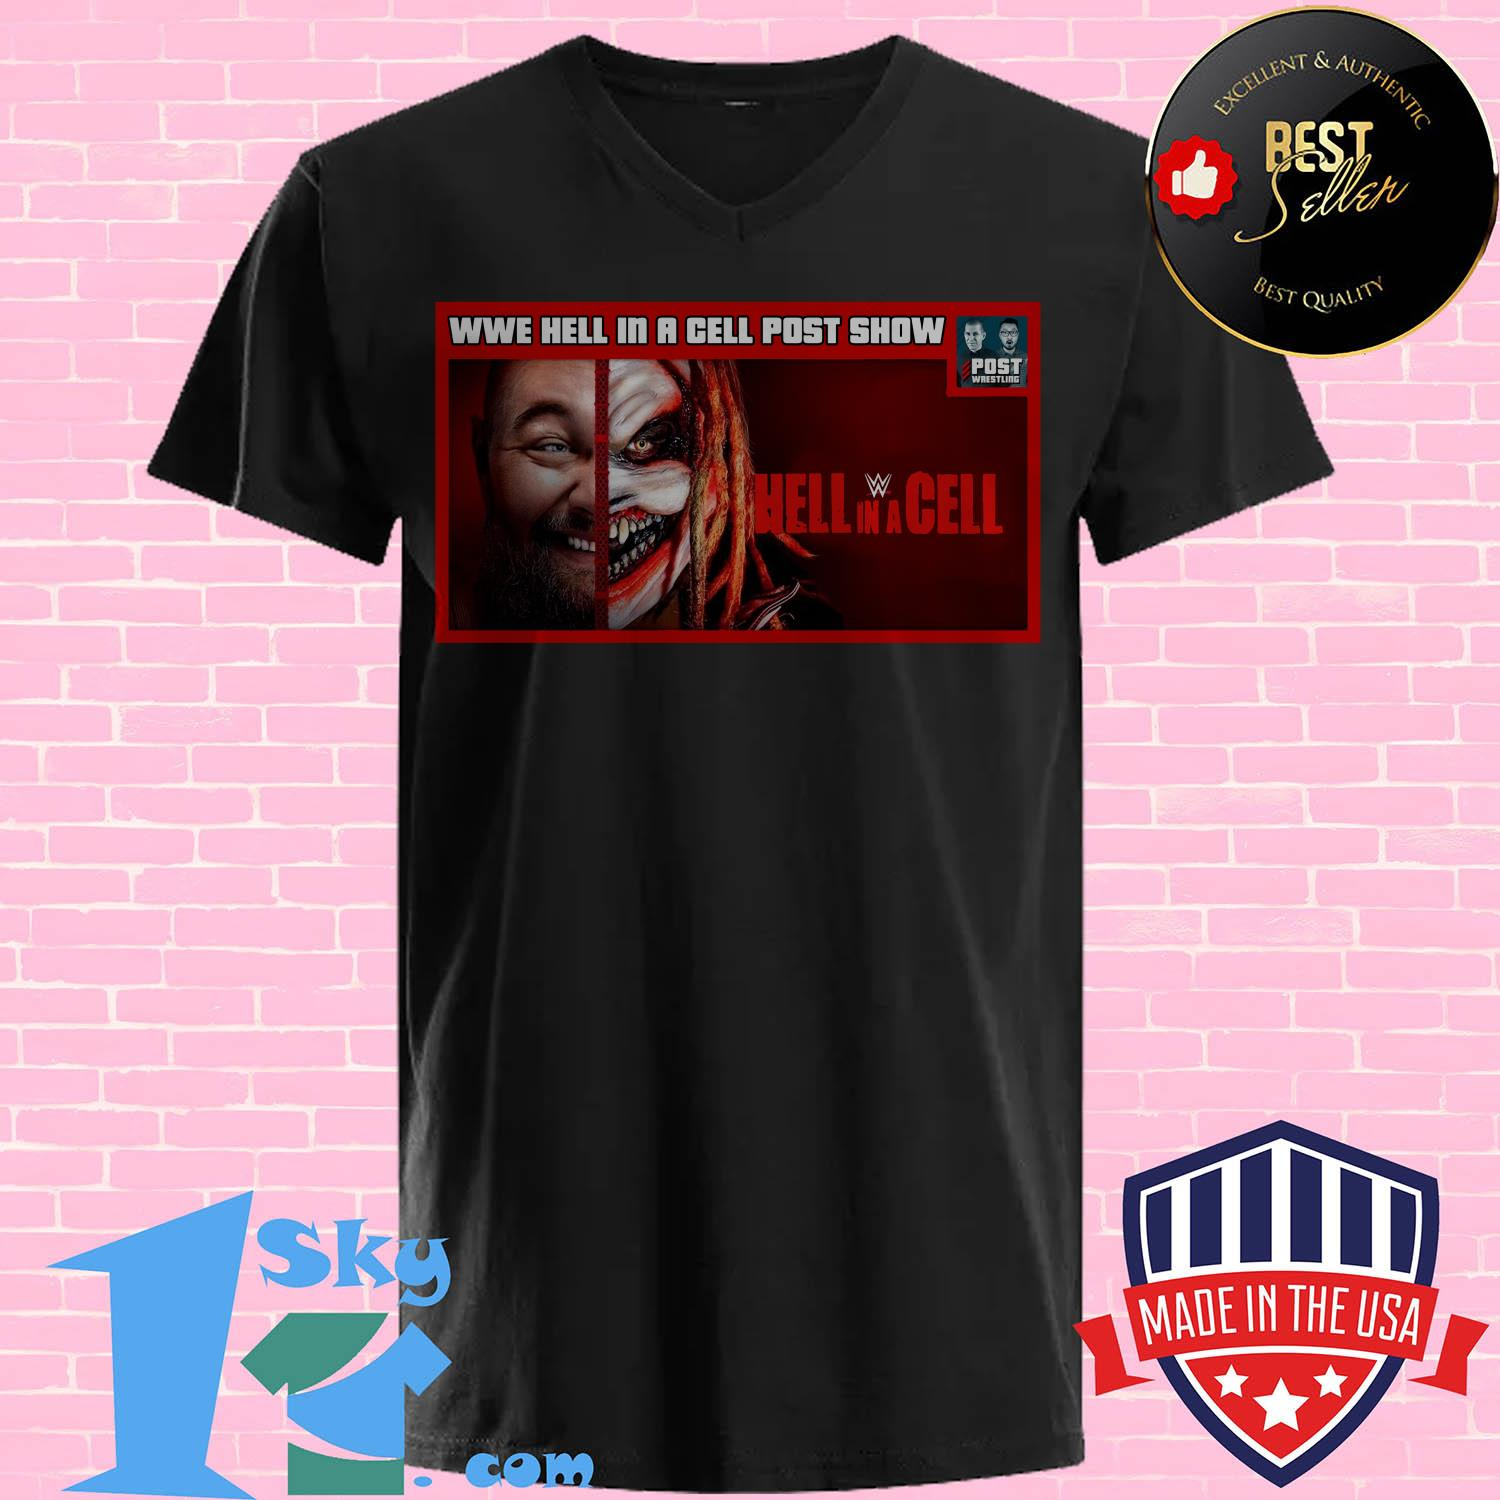 wwe hell in a cell post show hell in a cell ladies tee - Wwe Hell In A Cell Post Show Hell In A Cell Shirt